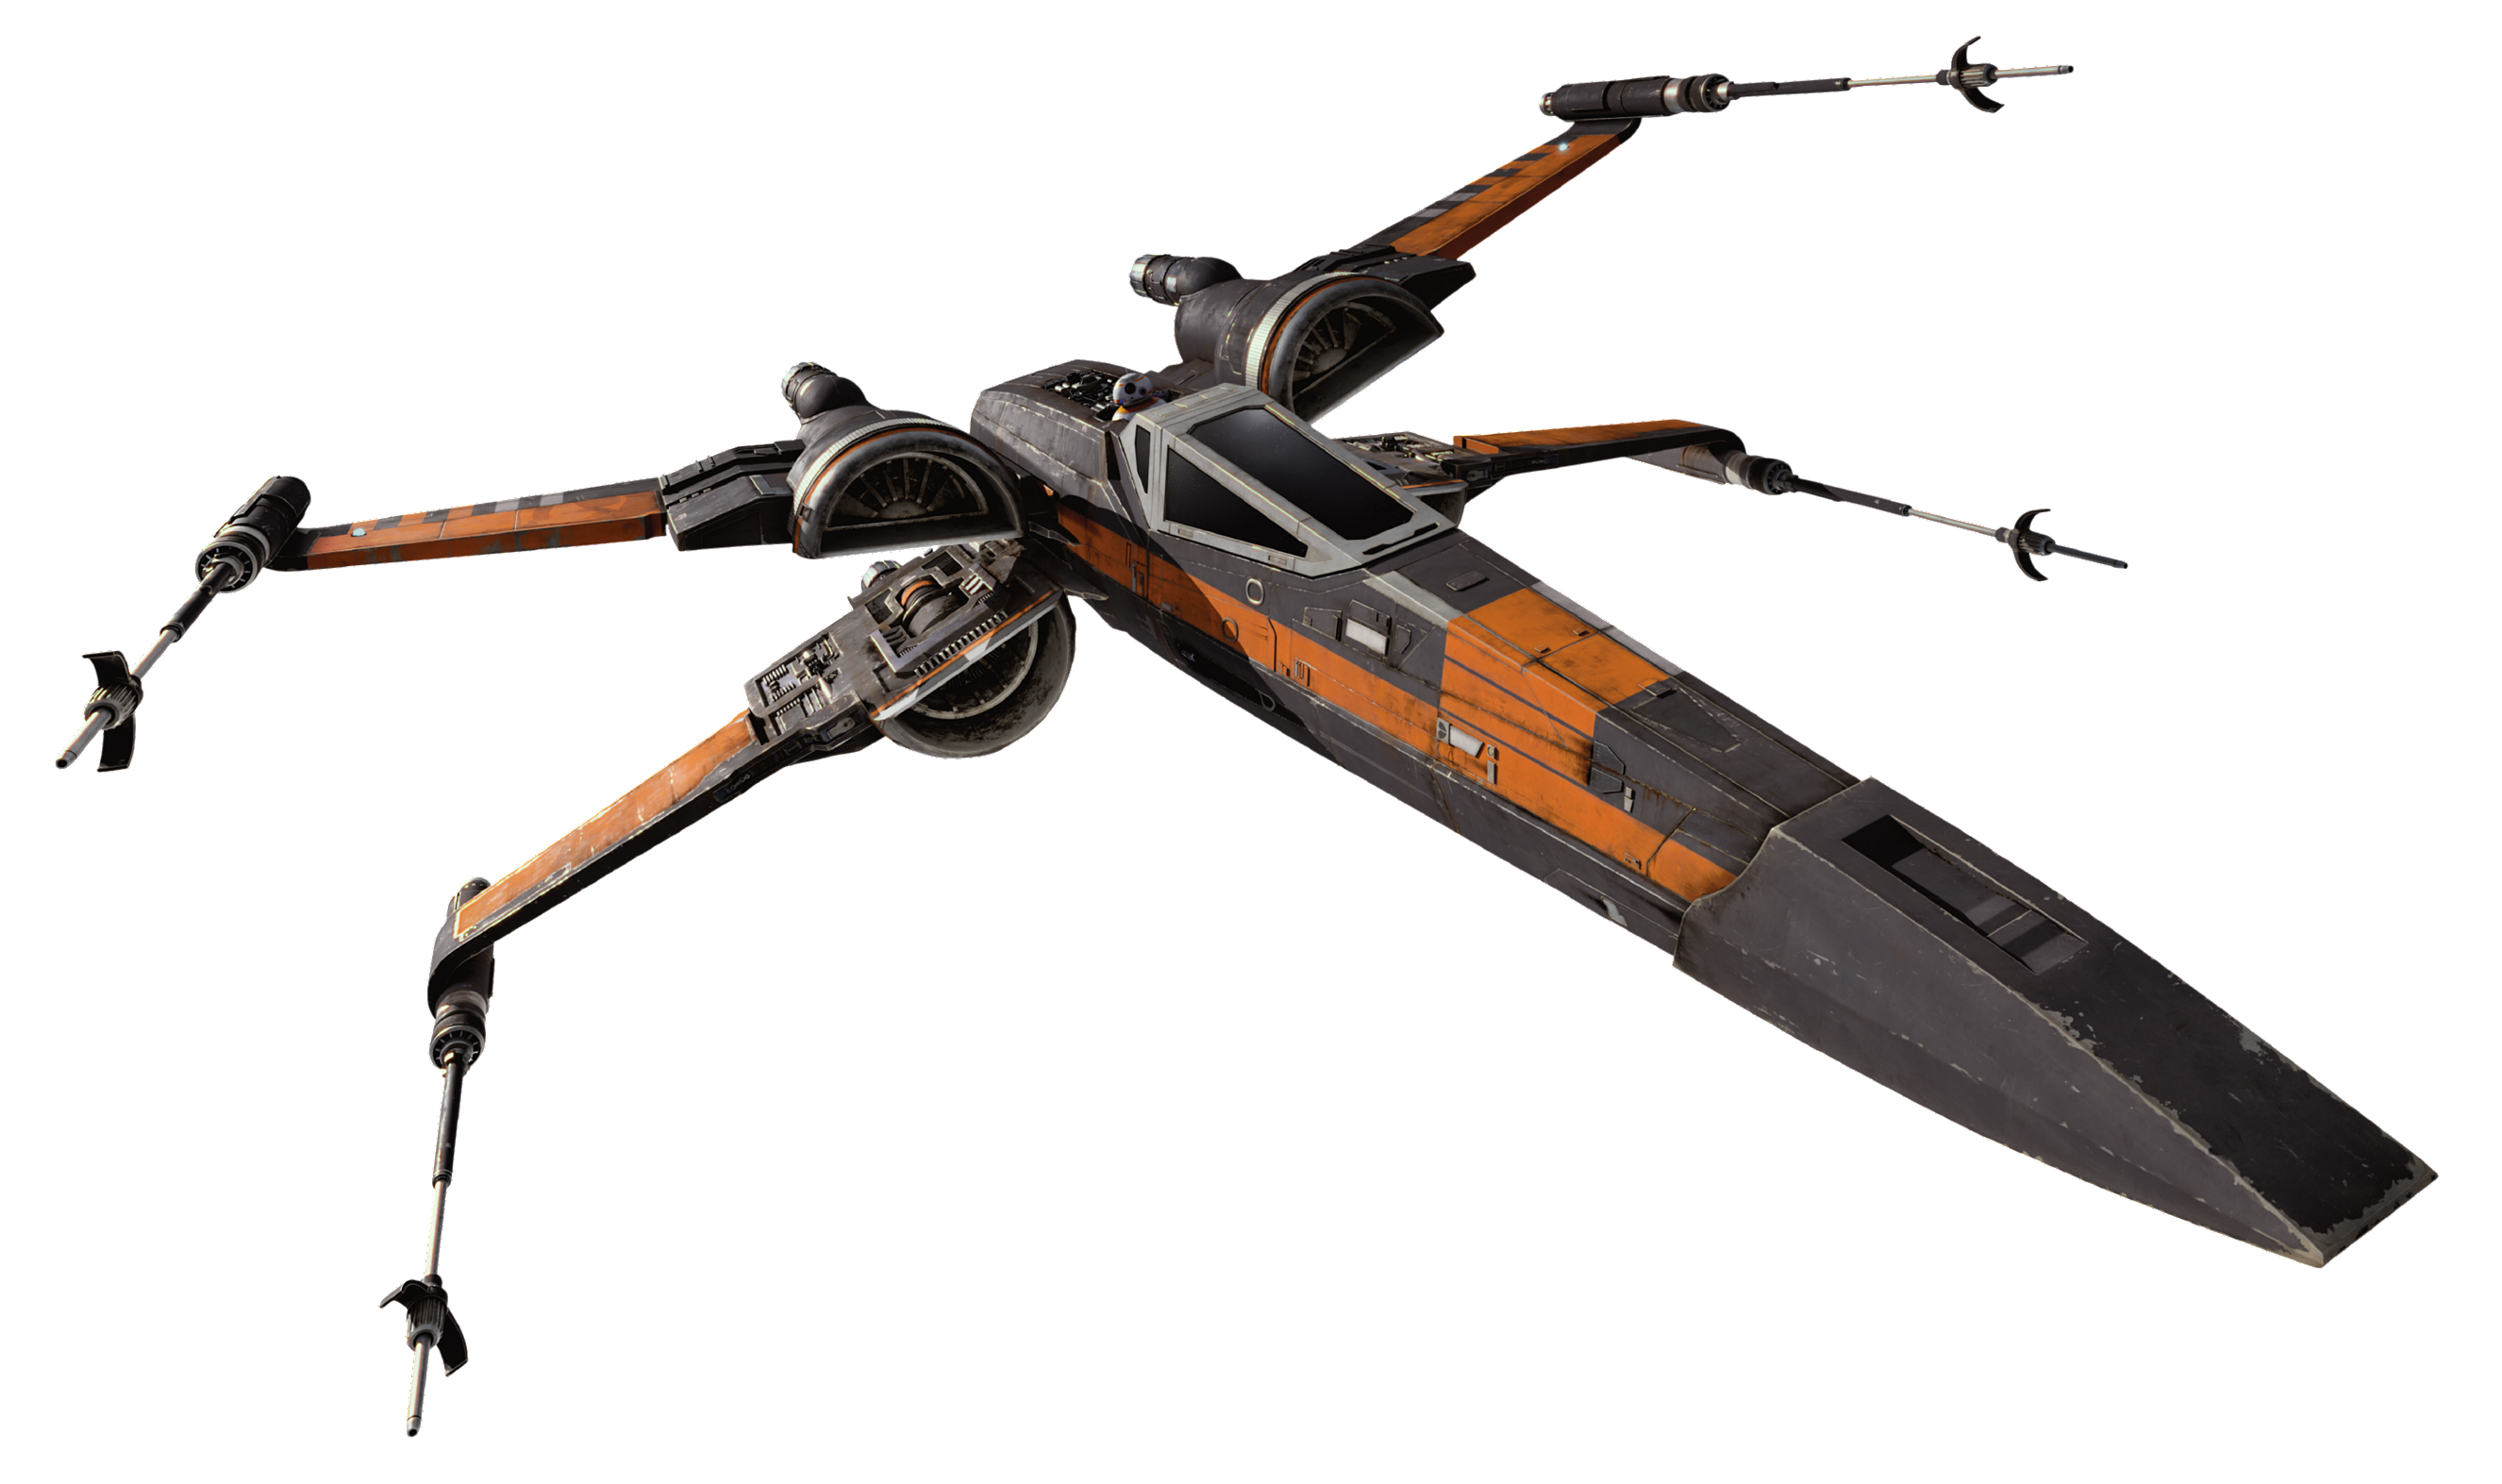 Pin By Var Silverseed On X Wing Fighter Concept Ships X Wing Star Wars